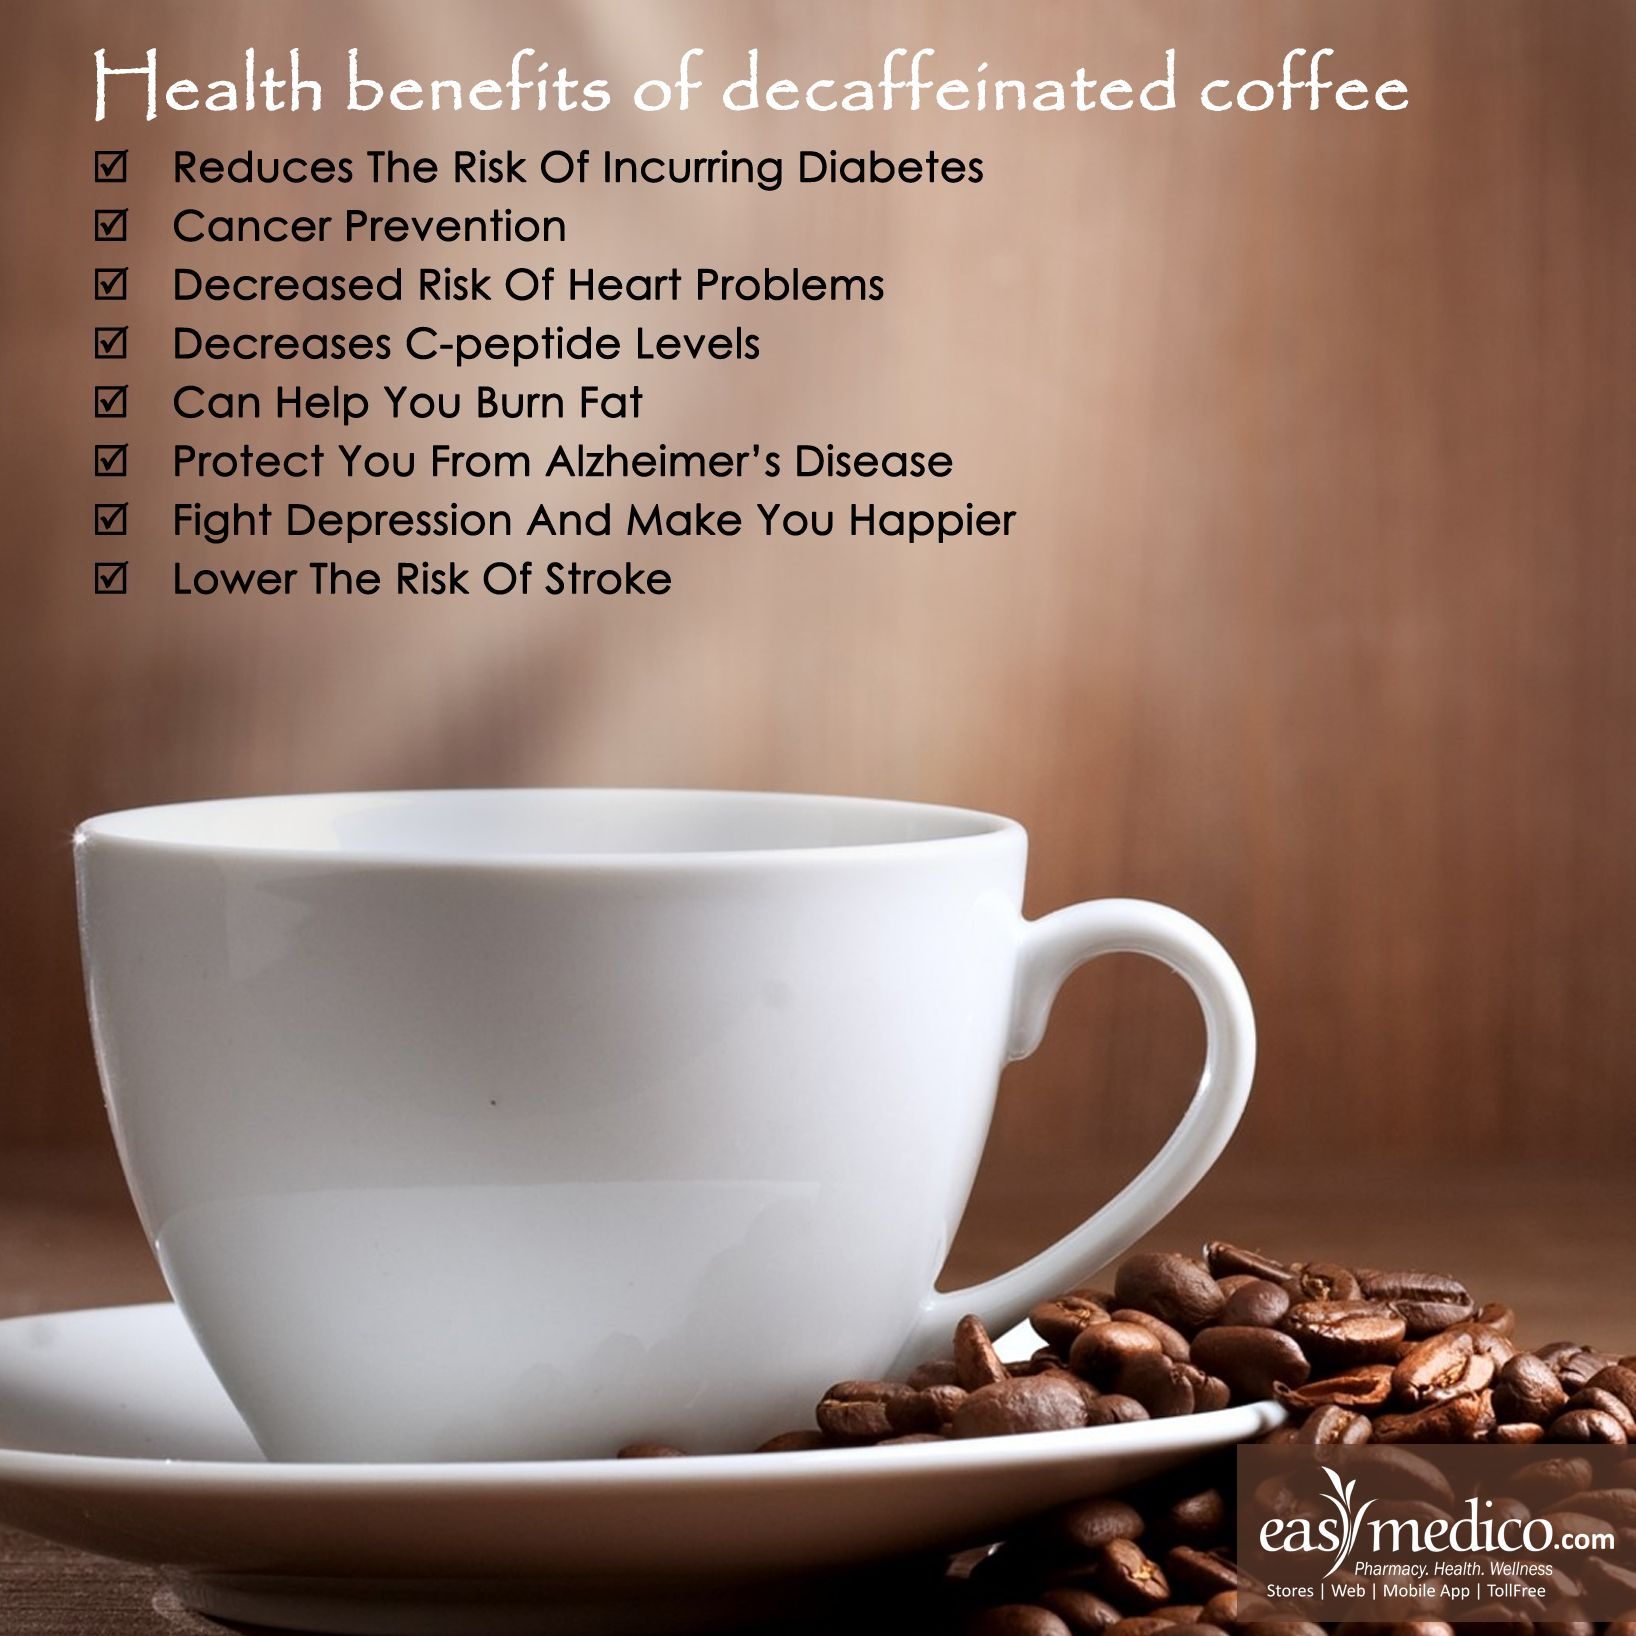 Emarogyabhava Add Decaffeinated Coffee To Your Daily Diet To Boost Your Health Healthcare Healthtips Cancer Prevention Daily Health Tips Health Tips